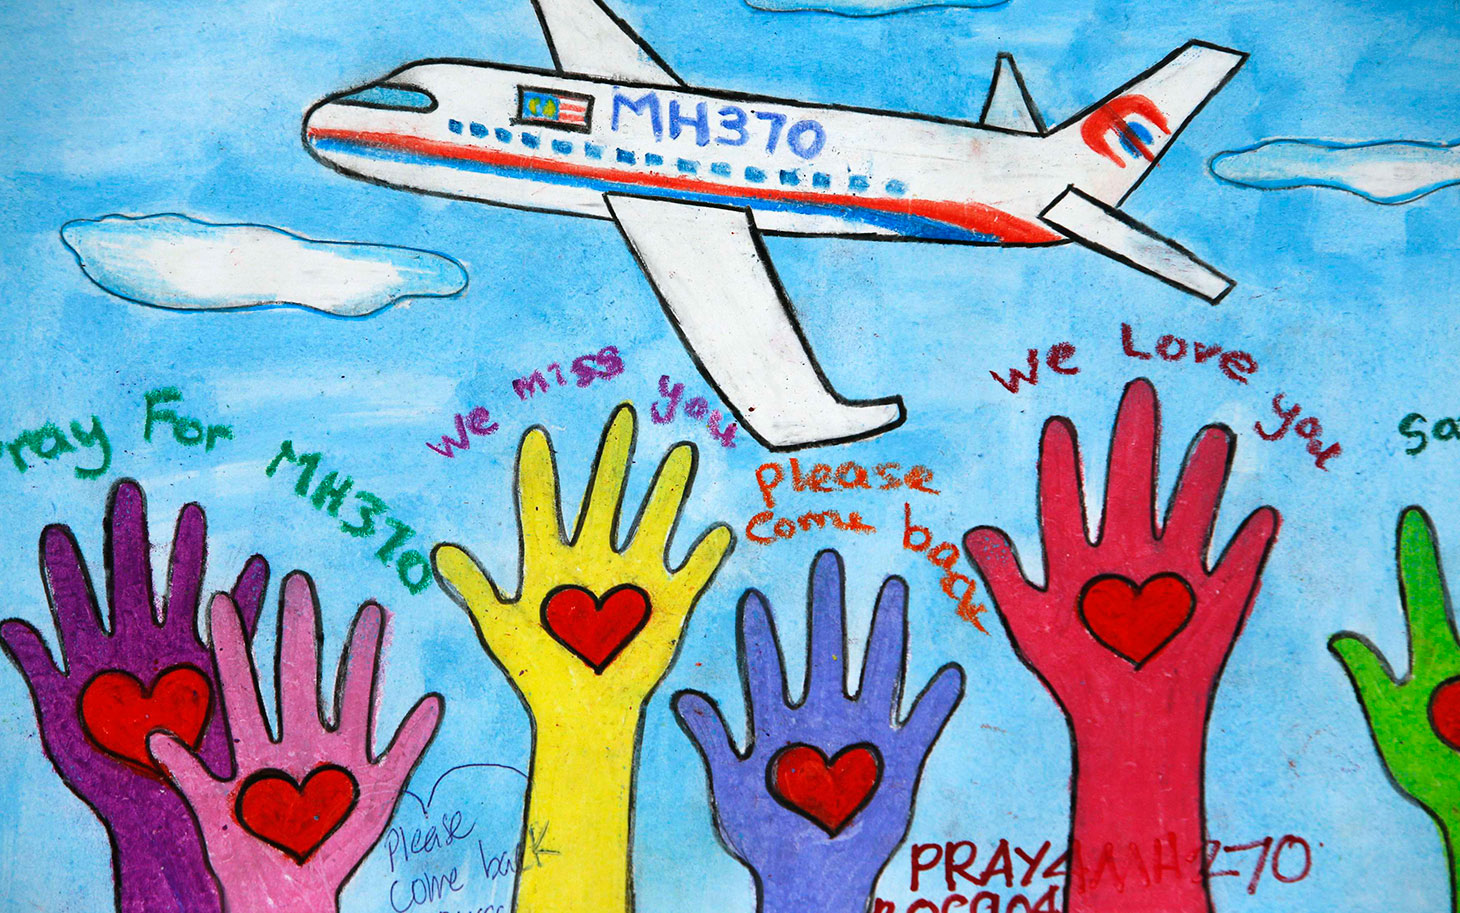 An artwork conveying well-wishes for the passengers and crew of the missing Malaysia Airlines Flight MH370 is seen at a viewing gallery in Kuala Lumpur International Airport March 19, 2014. REUTERS/Edgar Su (MALAYSIA - Tags: DISASTER TRANSPORT)